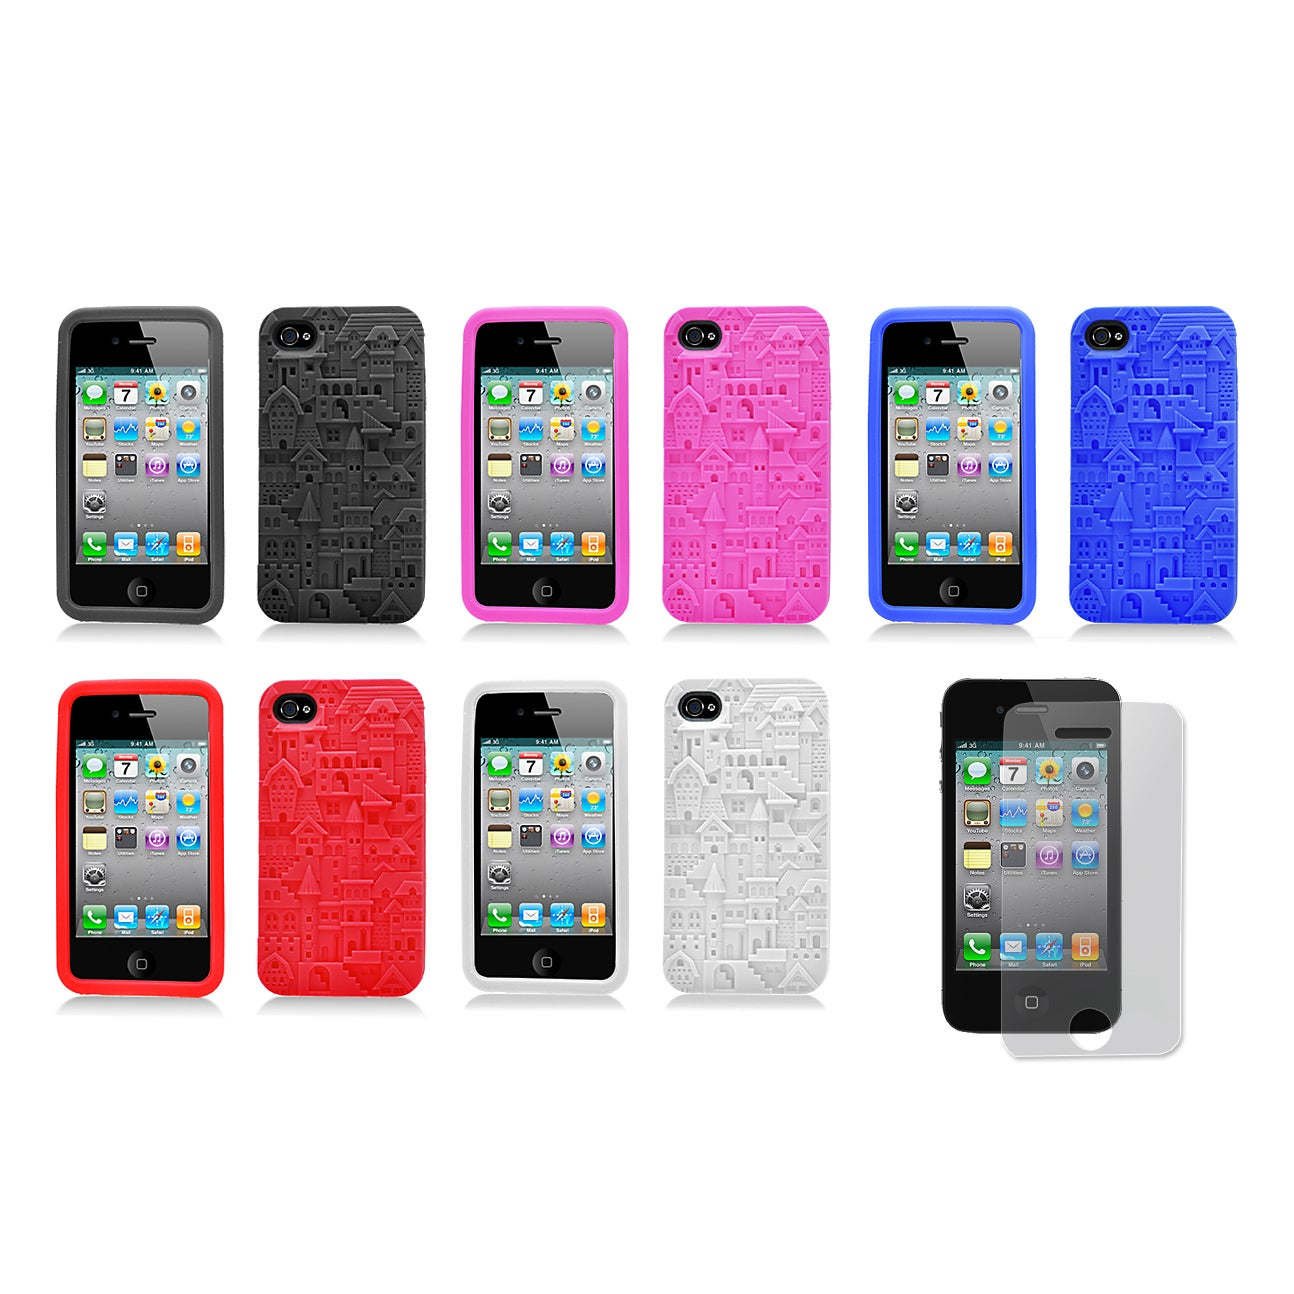 Apple iPhone 4/4S Castle Design Silicone Skin Case and Screen Protector